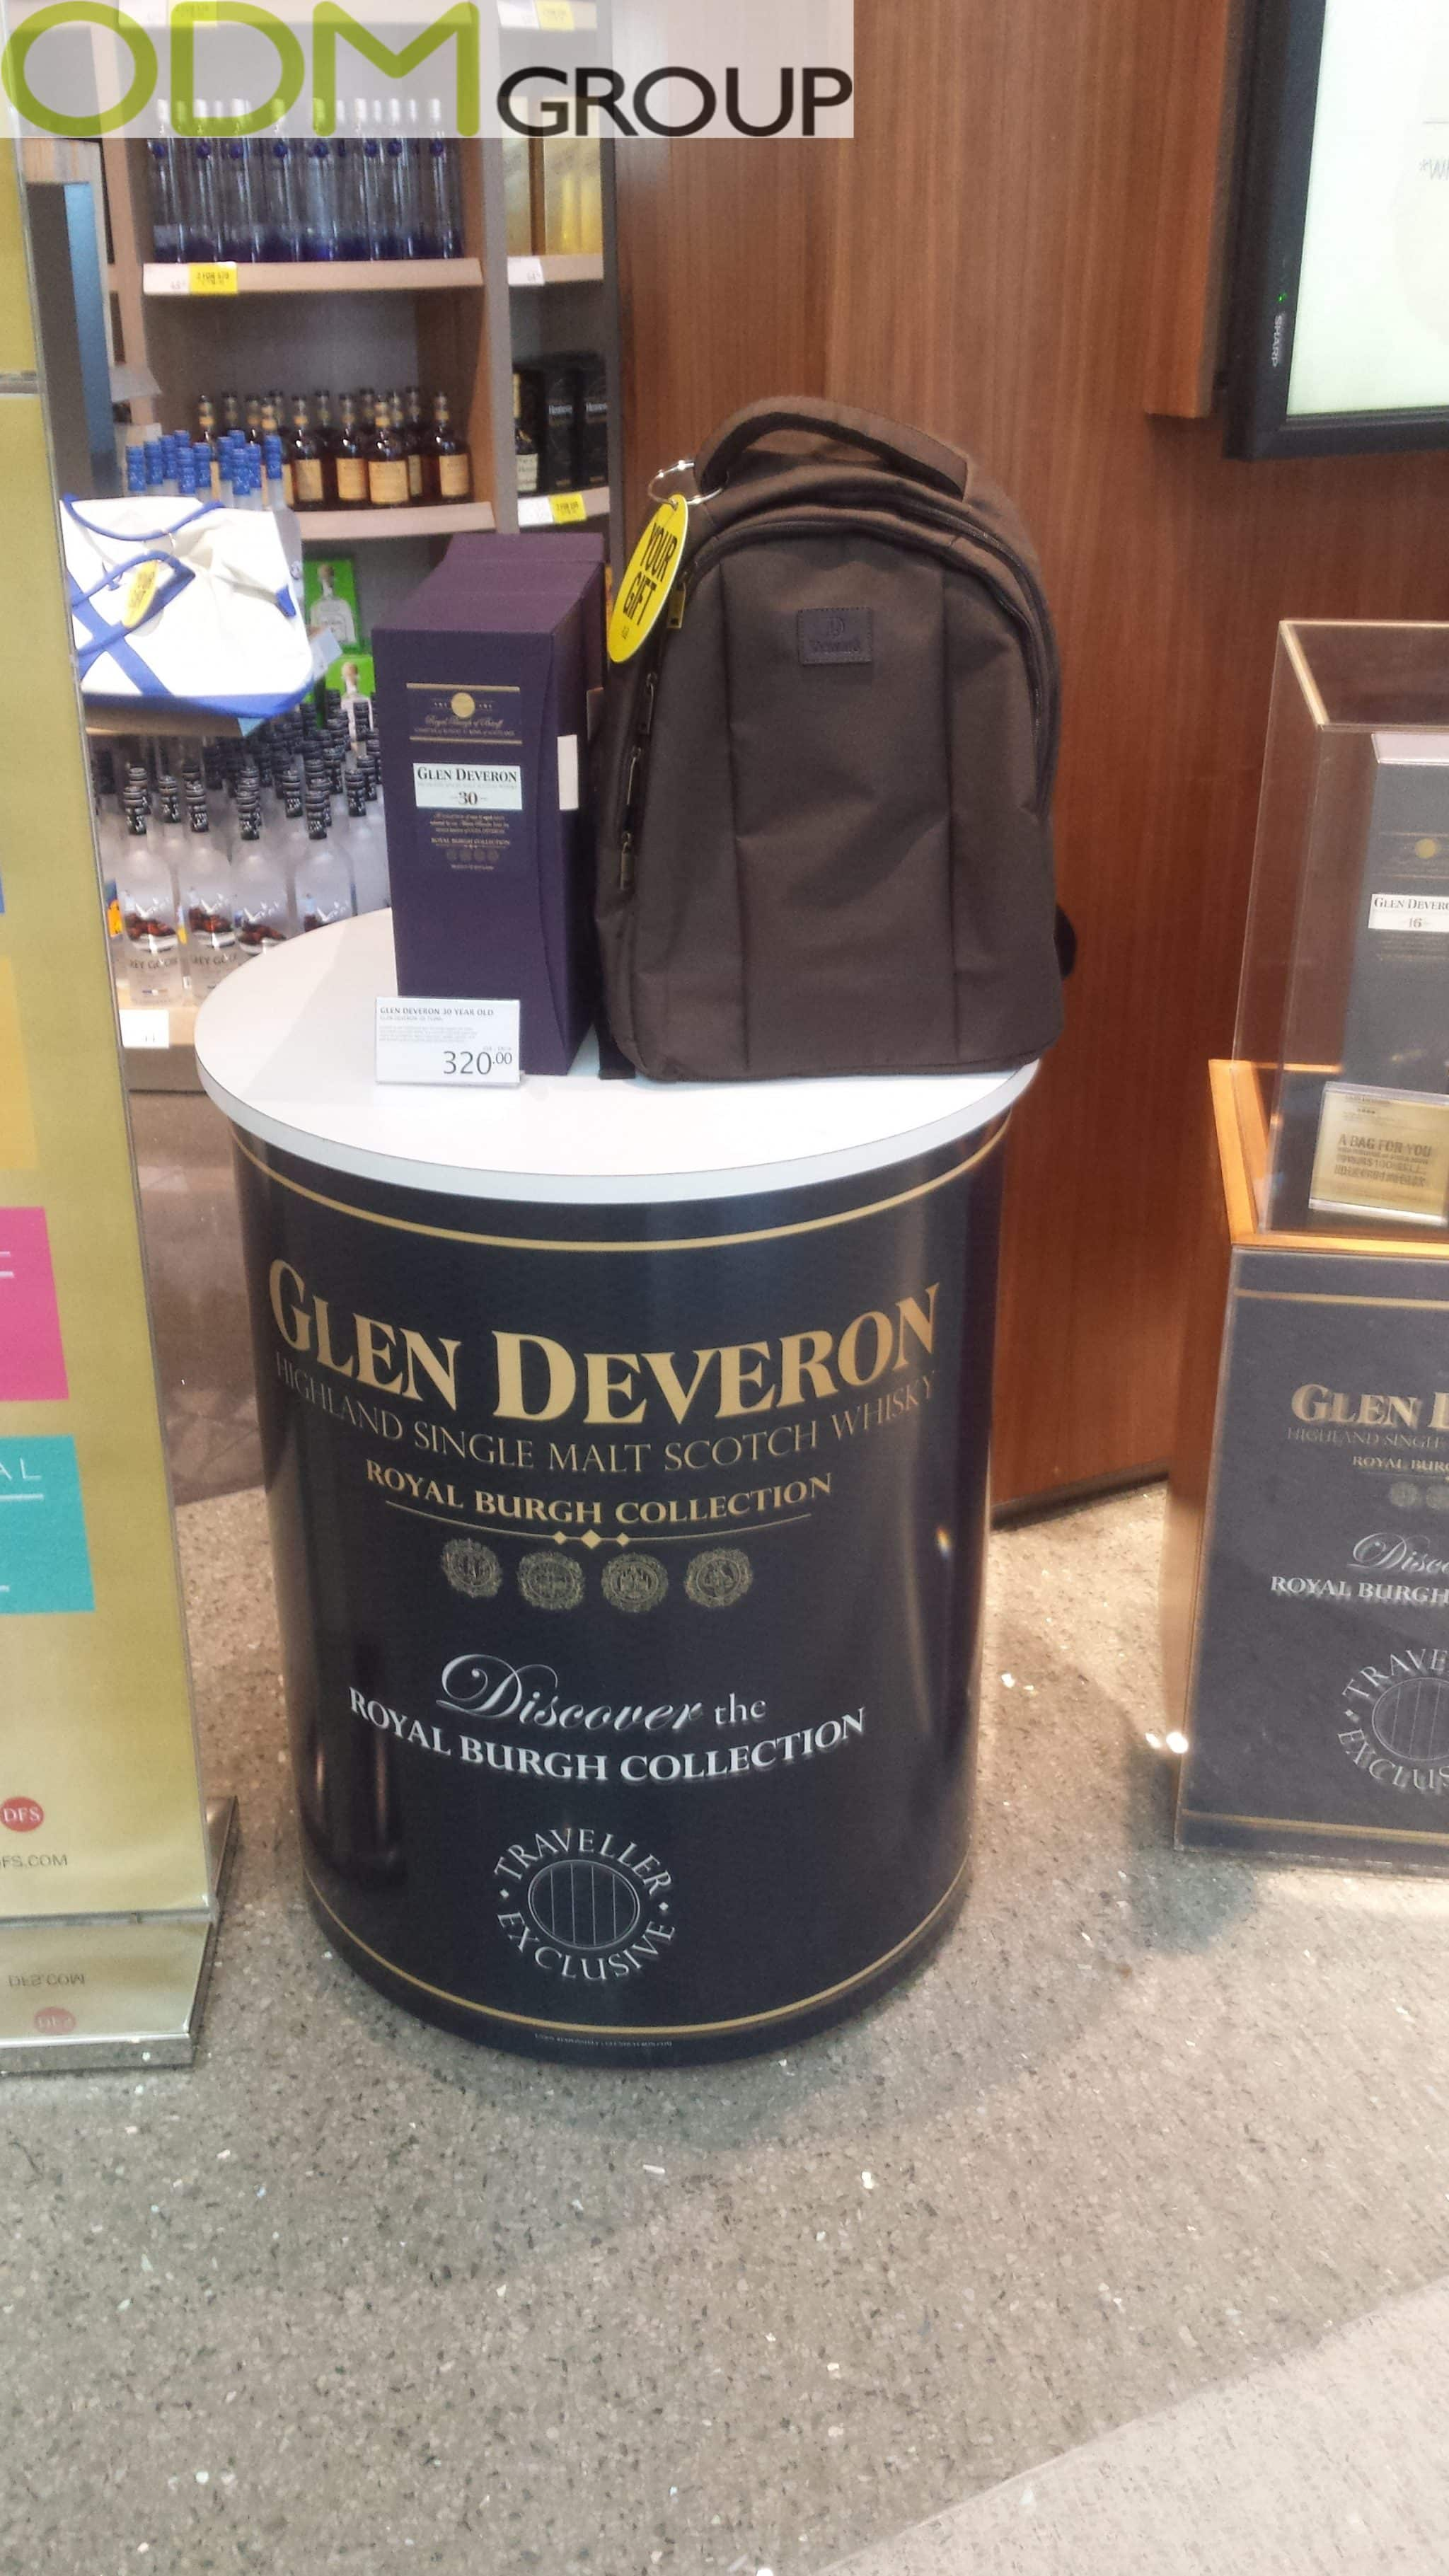 Duty Free Promo Backpack with Glen Deveron Whisky